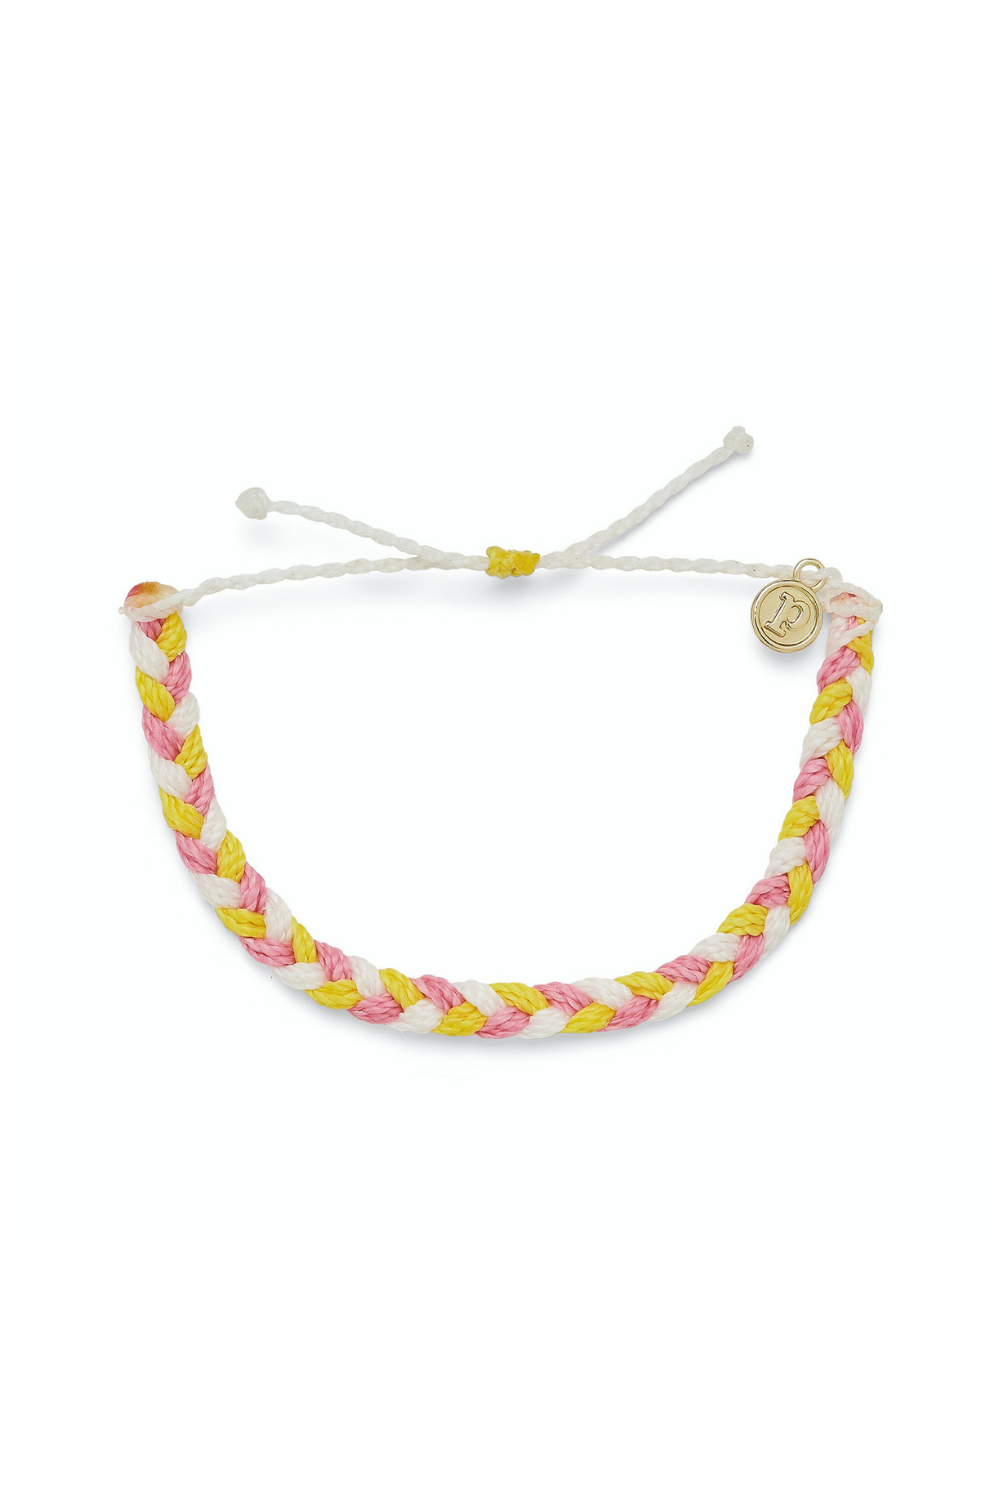 Pura Vida Strawberry Lemonade Multi Braided | Bella Lucca Boutique